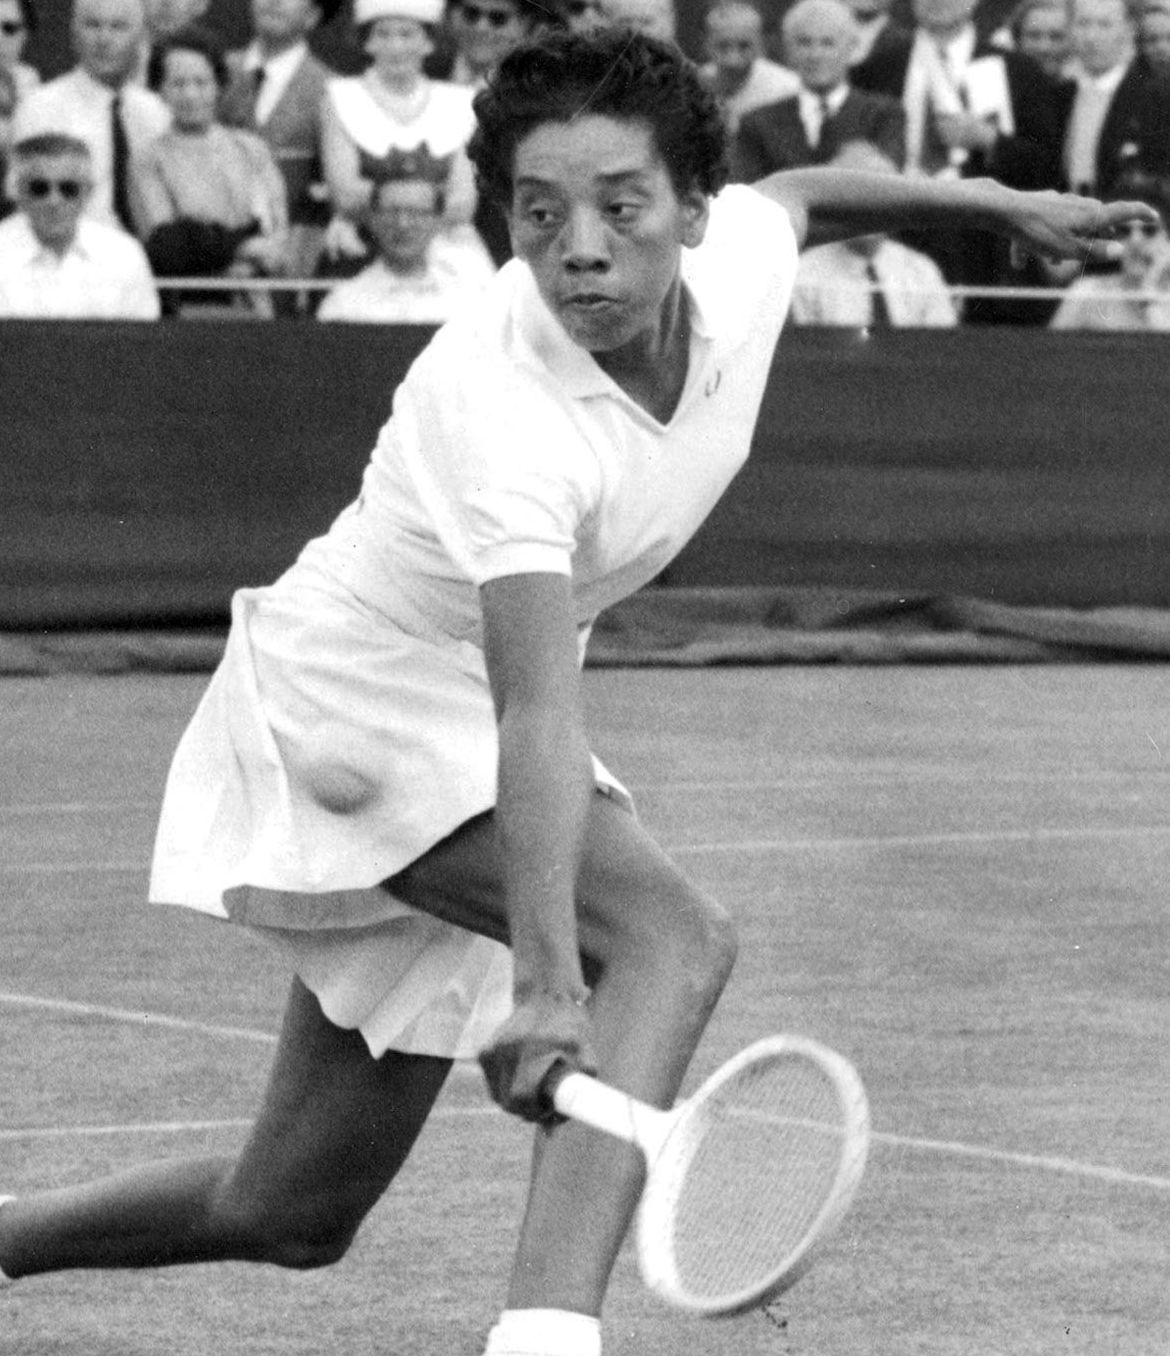 1940 Census: Tennis legend didn't exist